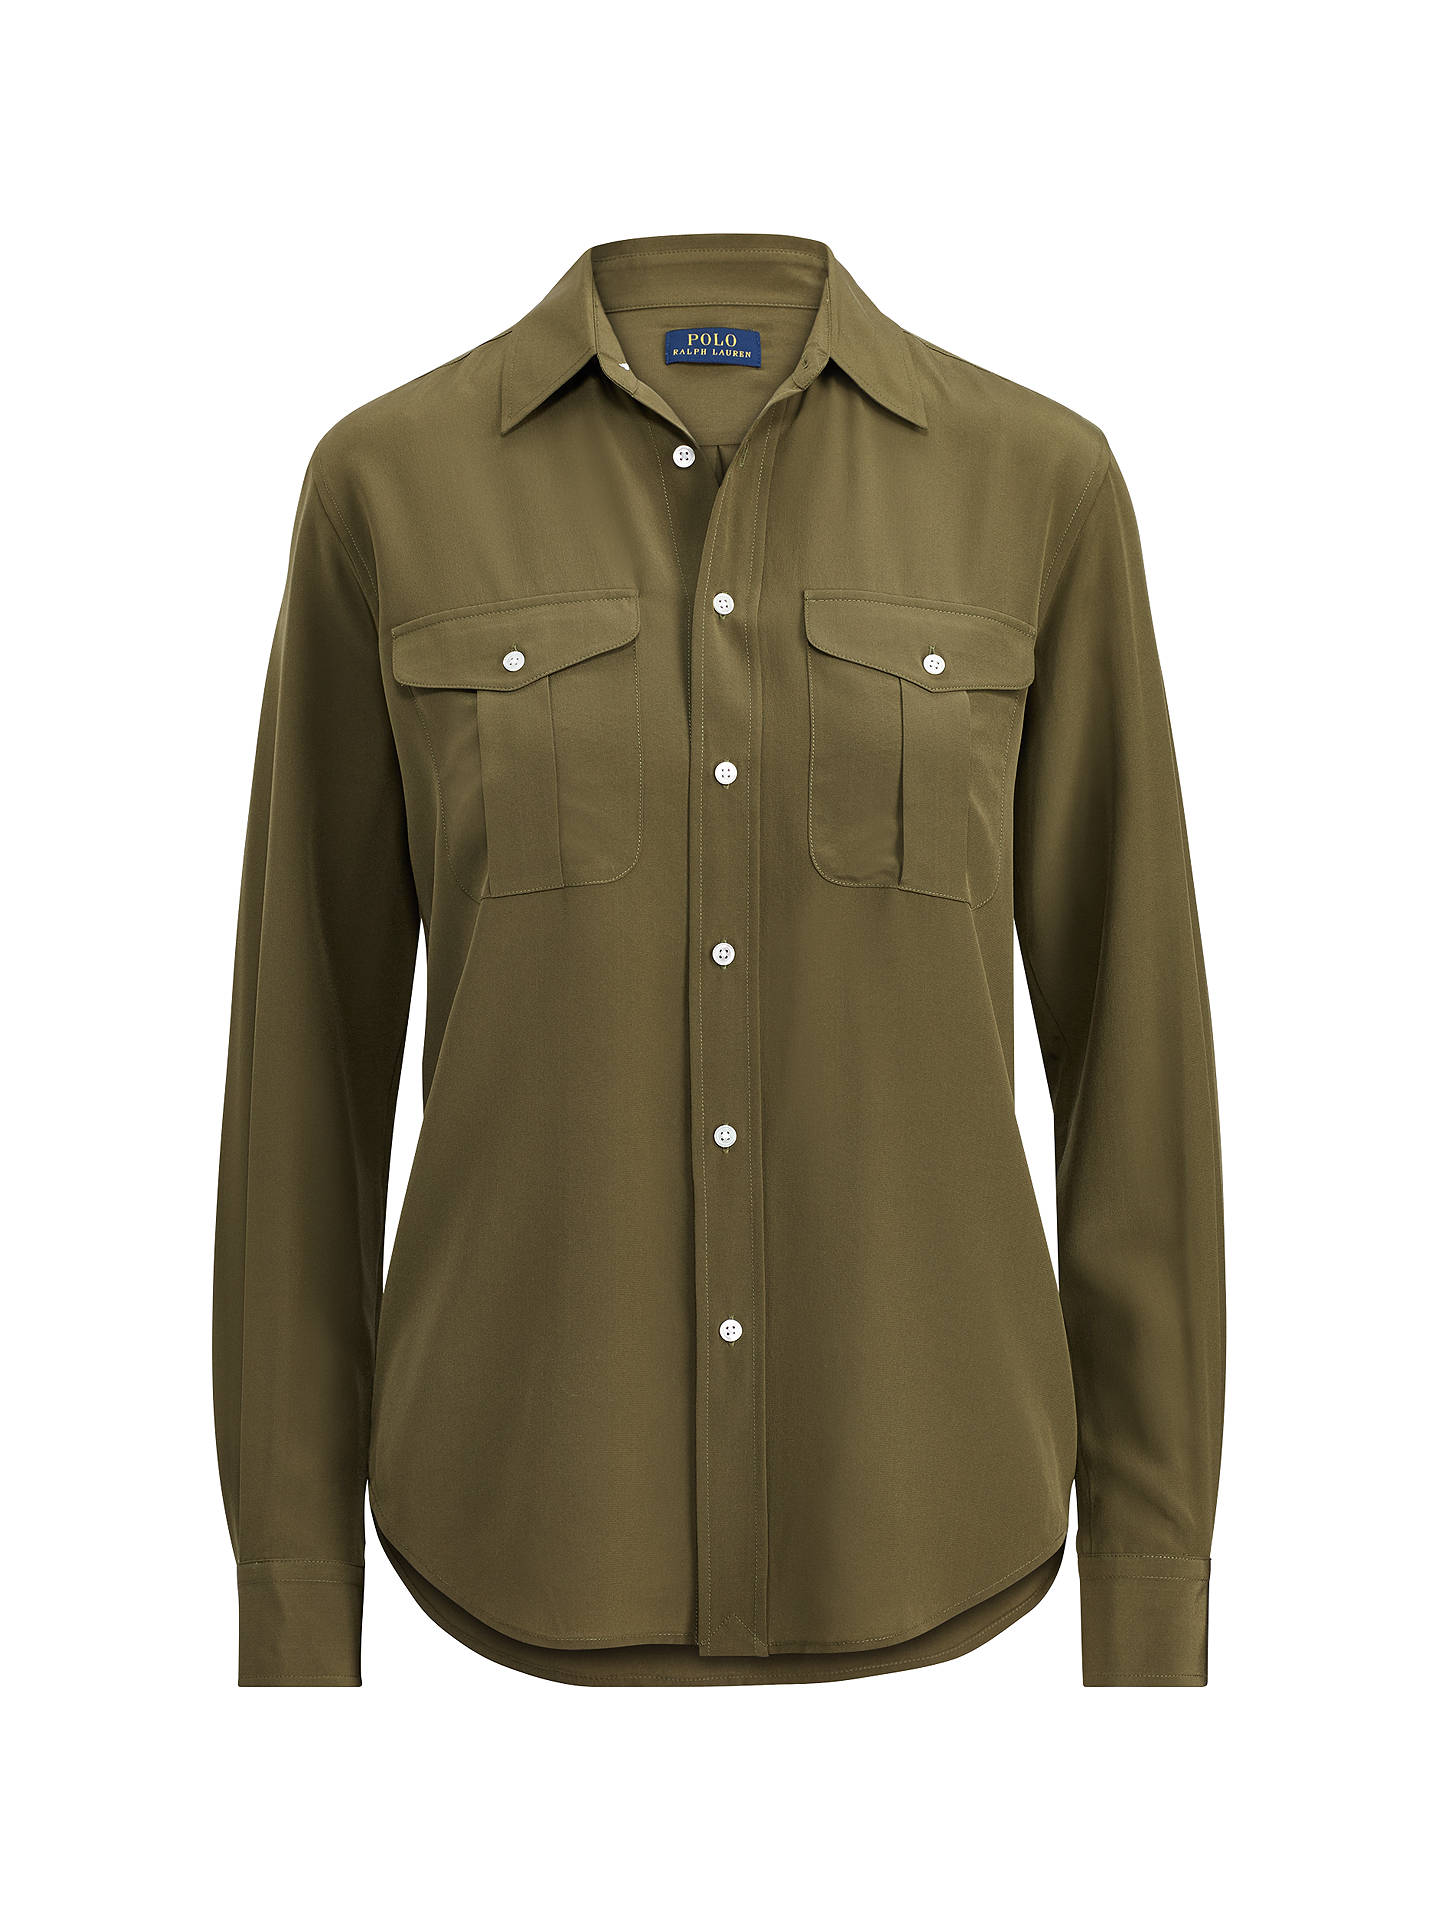 b6f0bc393 ... Buy Polo Ralph Lauren Silk Button Down Shirt, Defender Green, 8 Online  at johnlewis